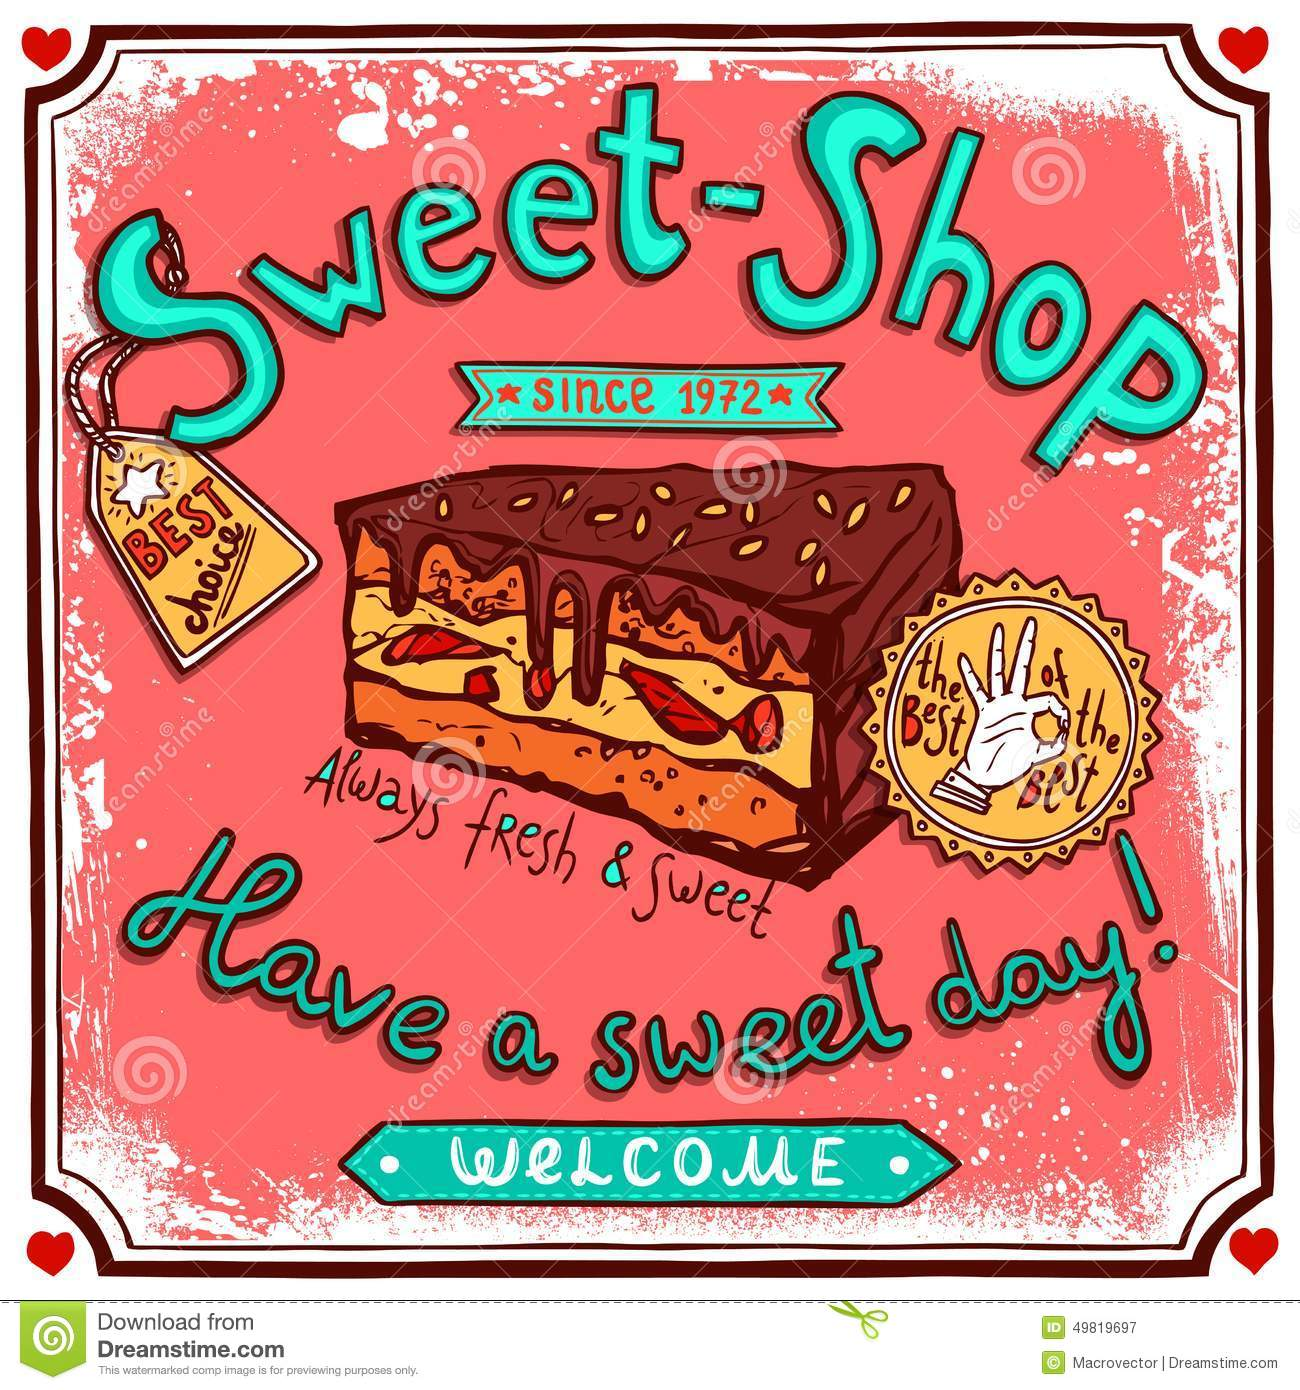 marketing concepts of m m candy pieces Creative candy ideas - fun ideas for fabulous candy from blaircandycom toggle cheap bulk candy can be good for marketing your business.